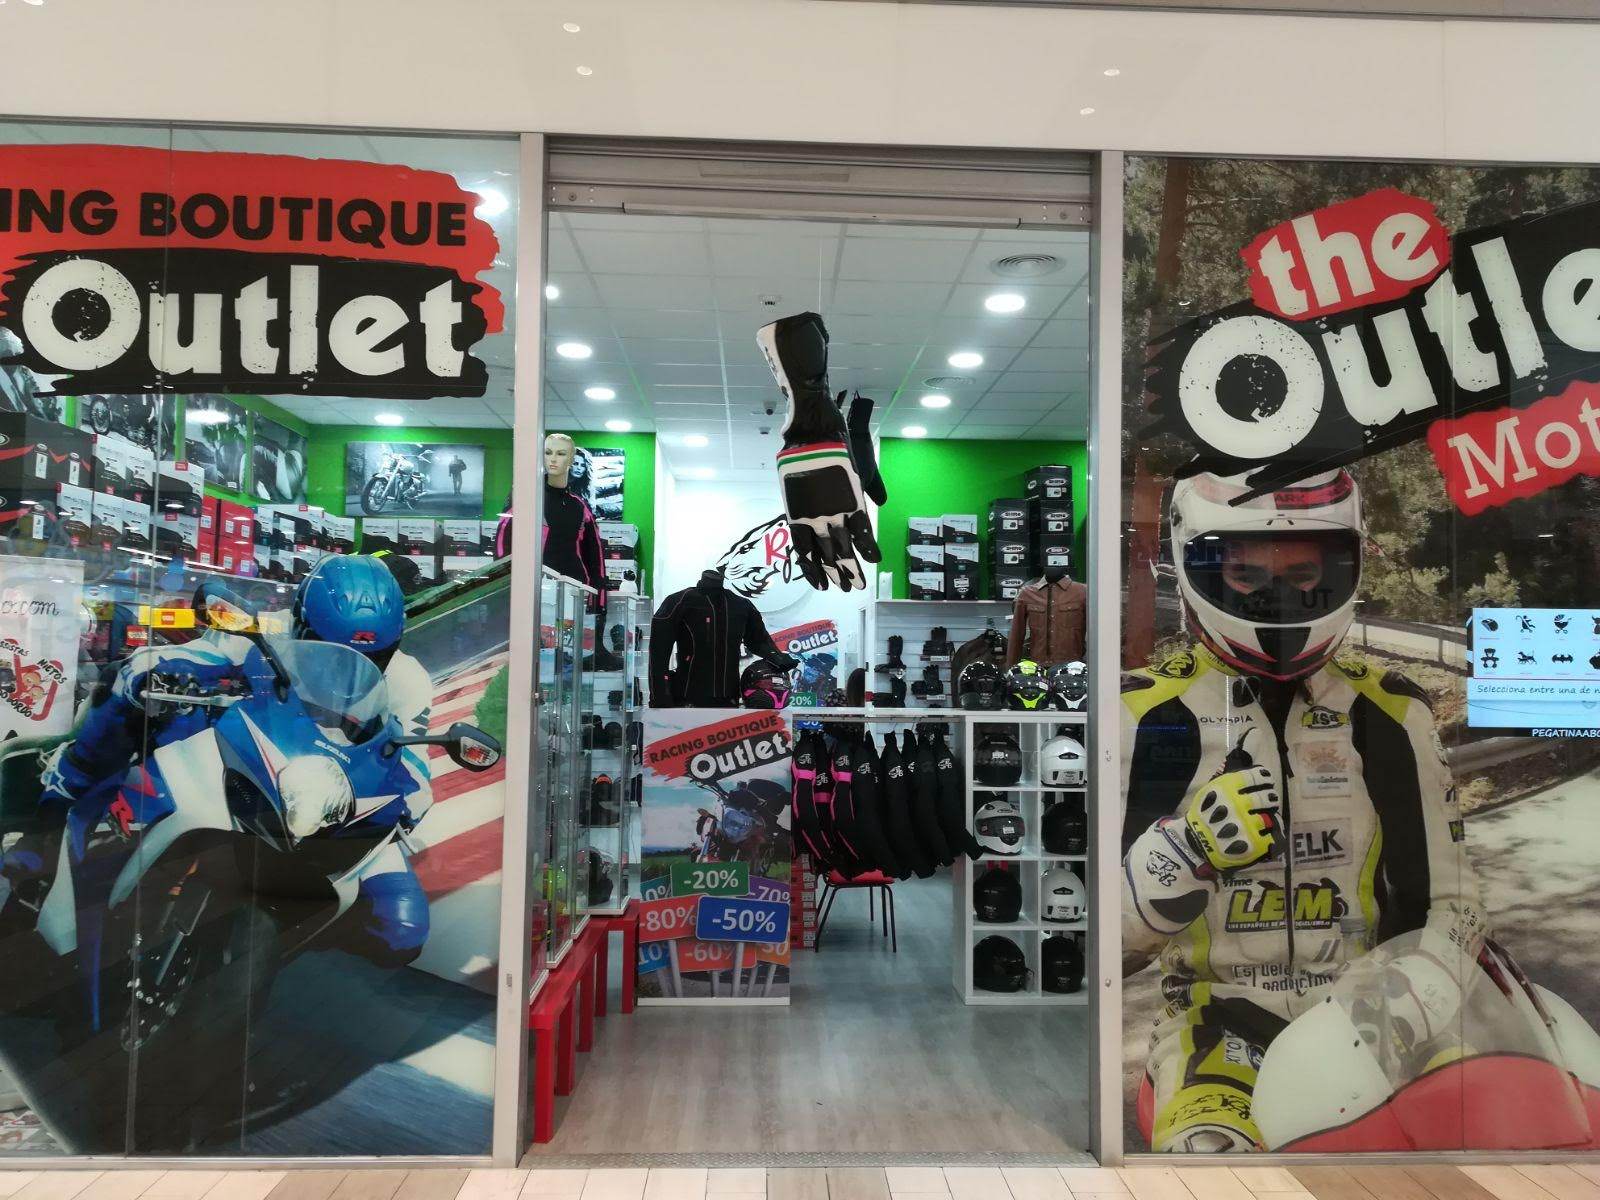 moverse Perplejo Cereal  Racing Boutique Outet - Sambil Outlet Madrid